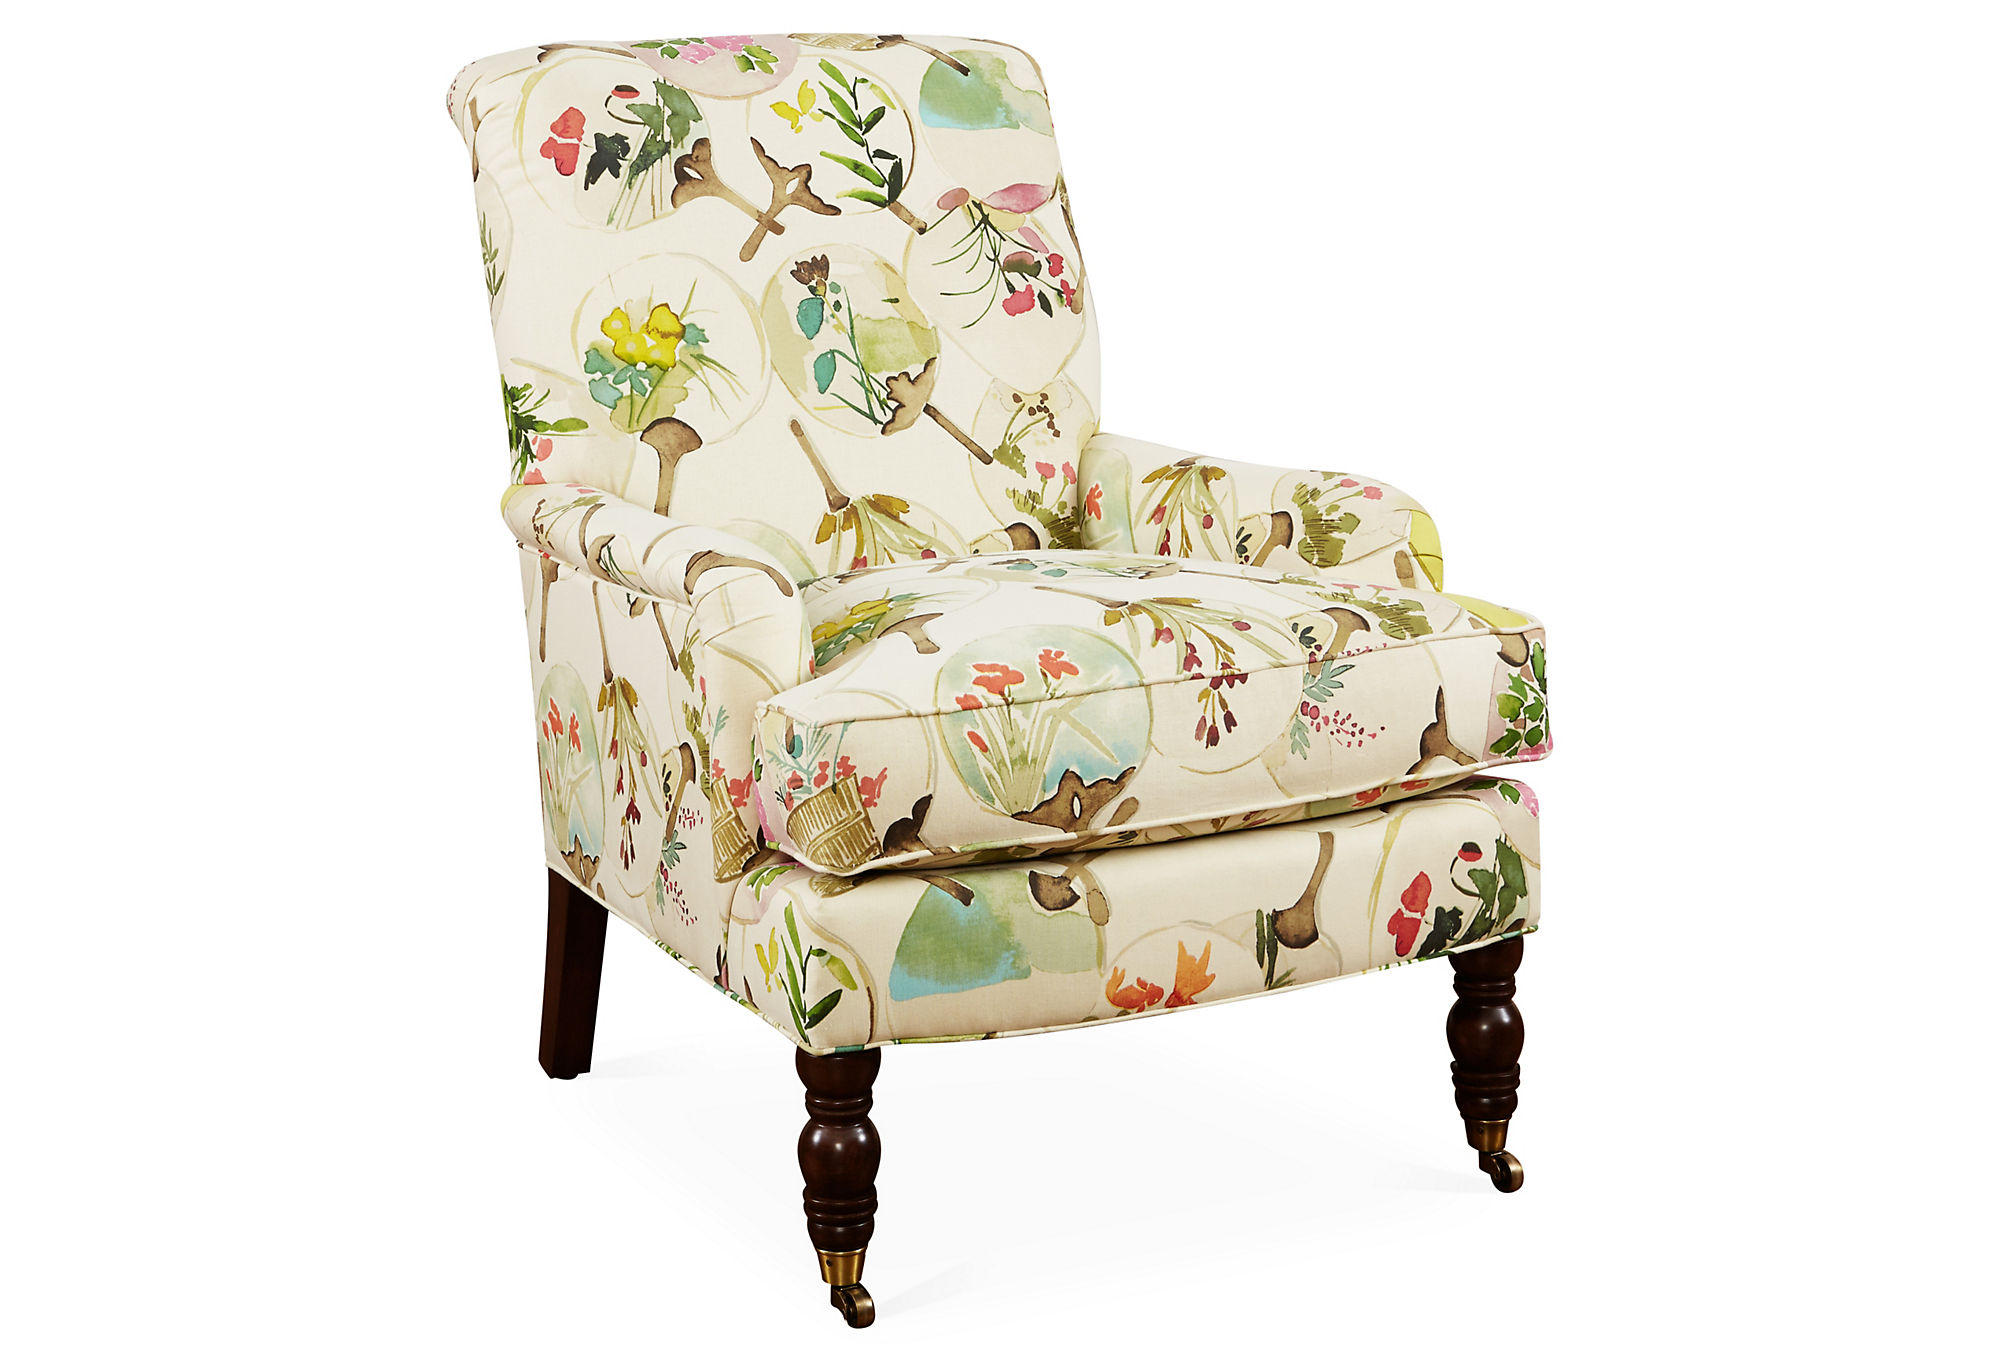 Floral Chairs Abigail Floral Accent Chair Beige Multi From One Kings Lane